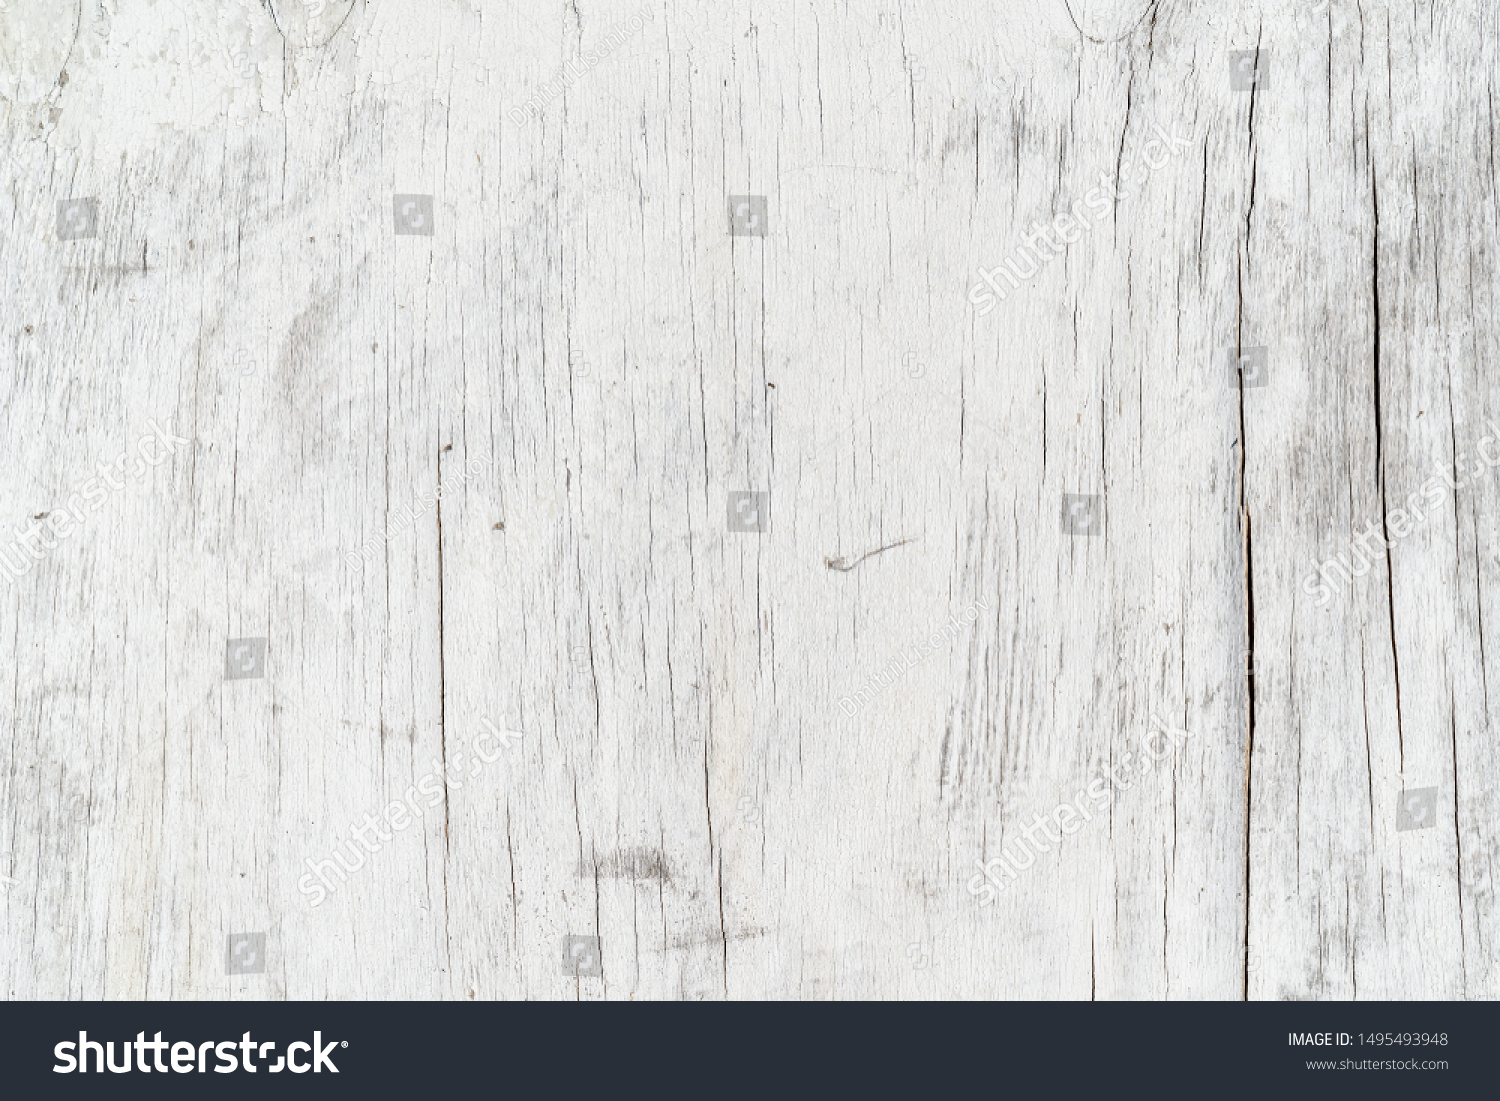 Wooden texture background. Old wood texture with white peeling paint. Different vertical lines. Background for text or design #1495493948